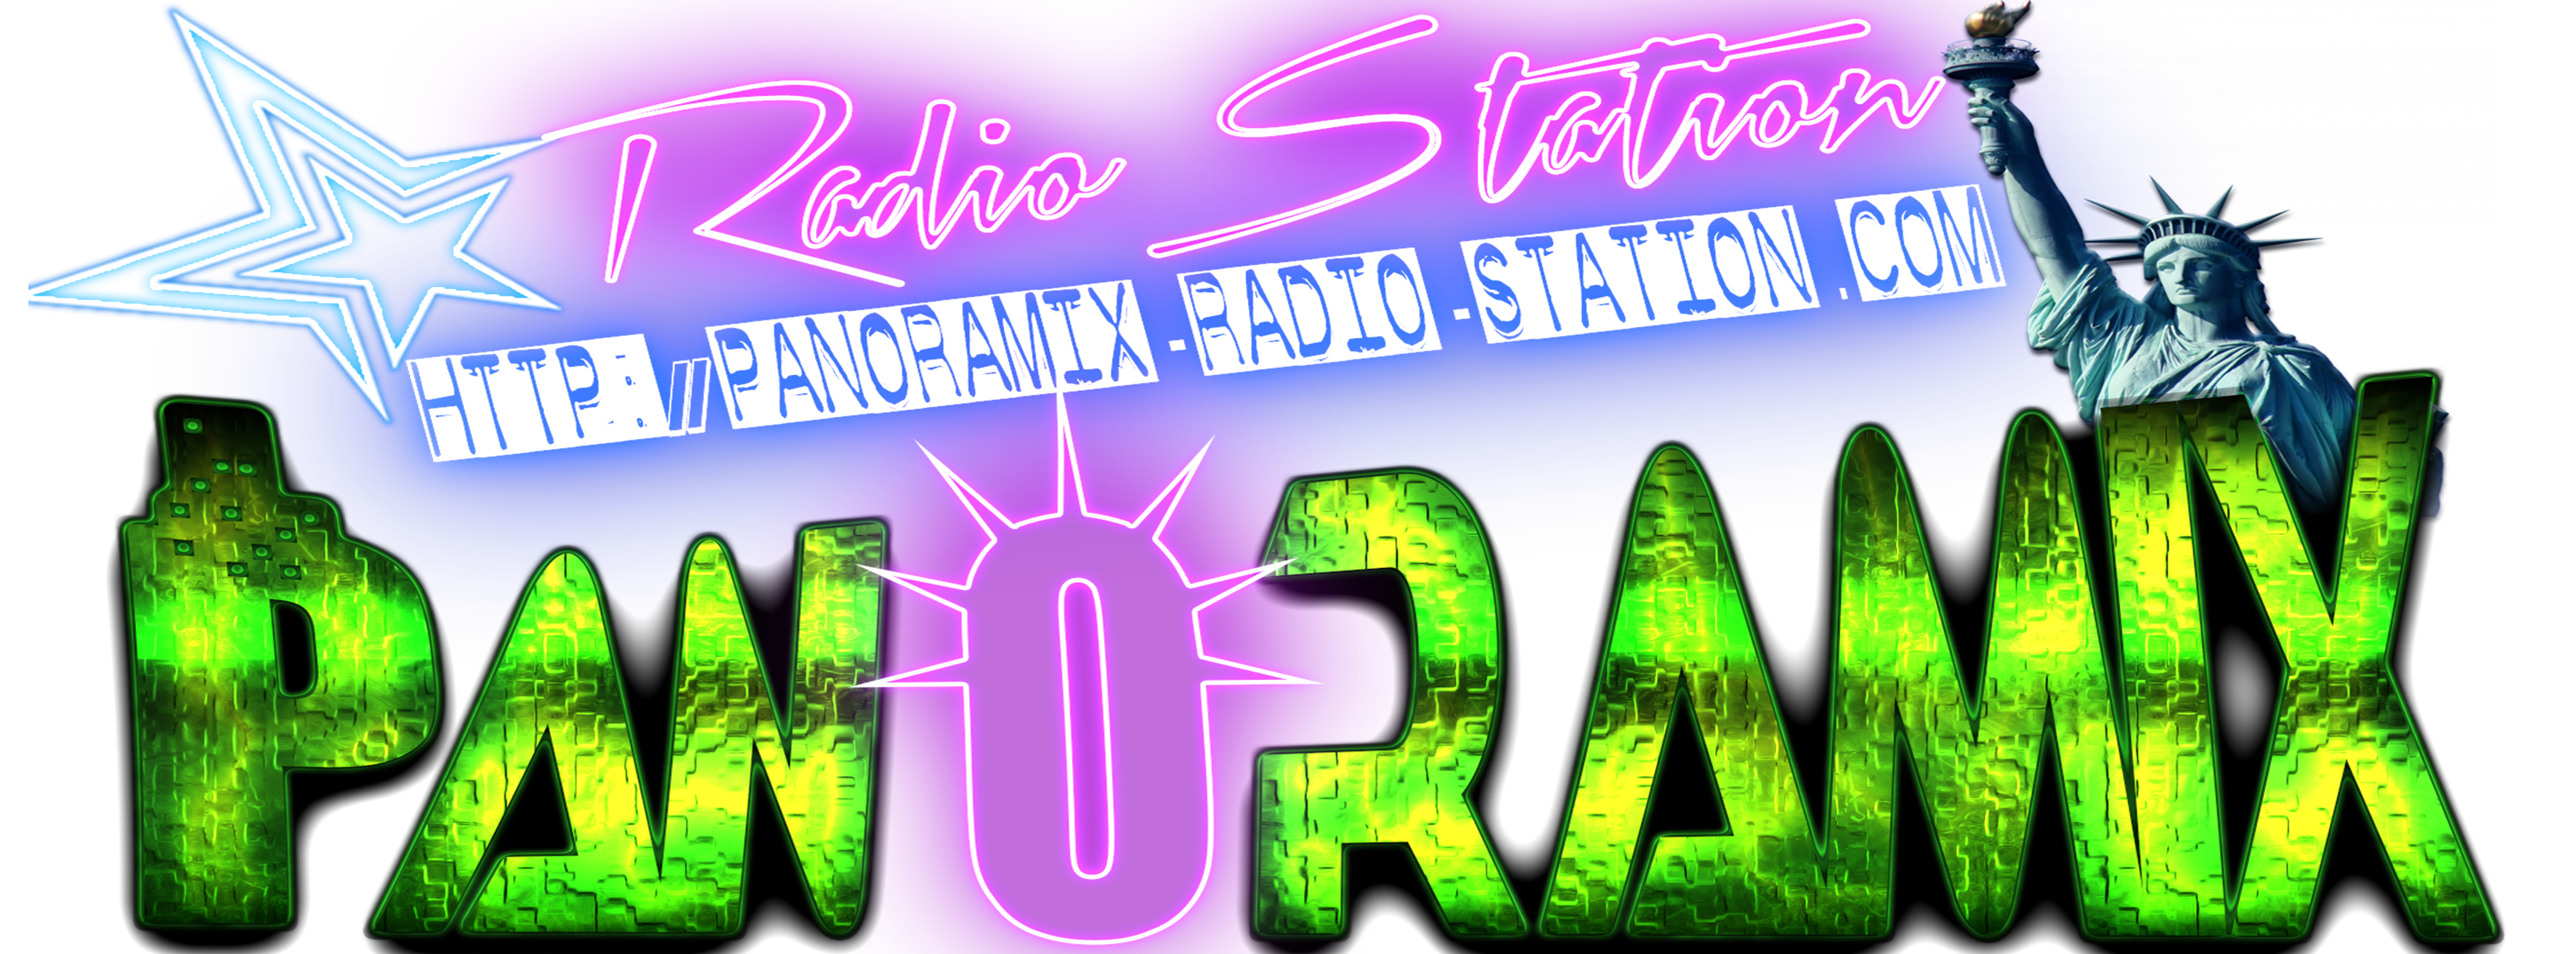 http://panoramix-radio-station.com/wp-content/uploads/2018/04/LOGO-OFFICIEL-2017-PANORAMIX-ETOILE-sable.png